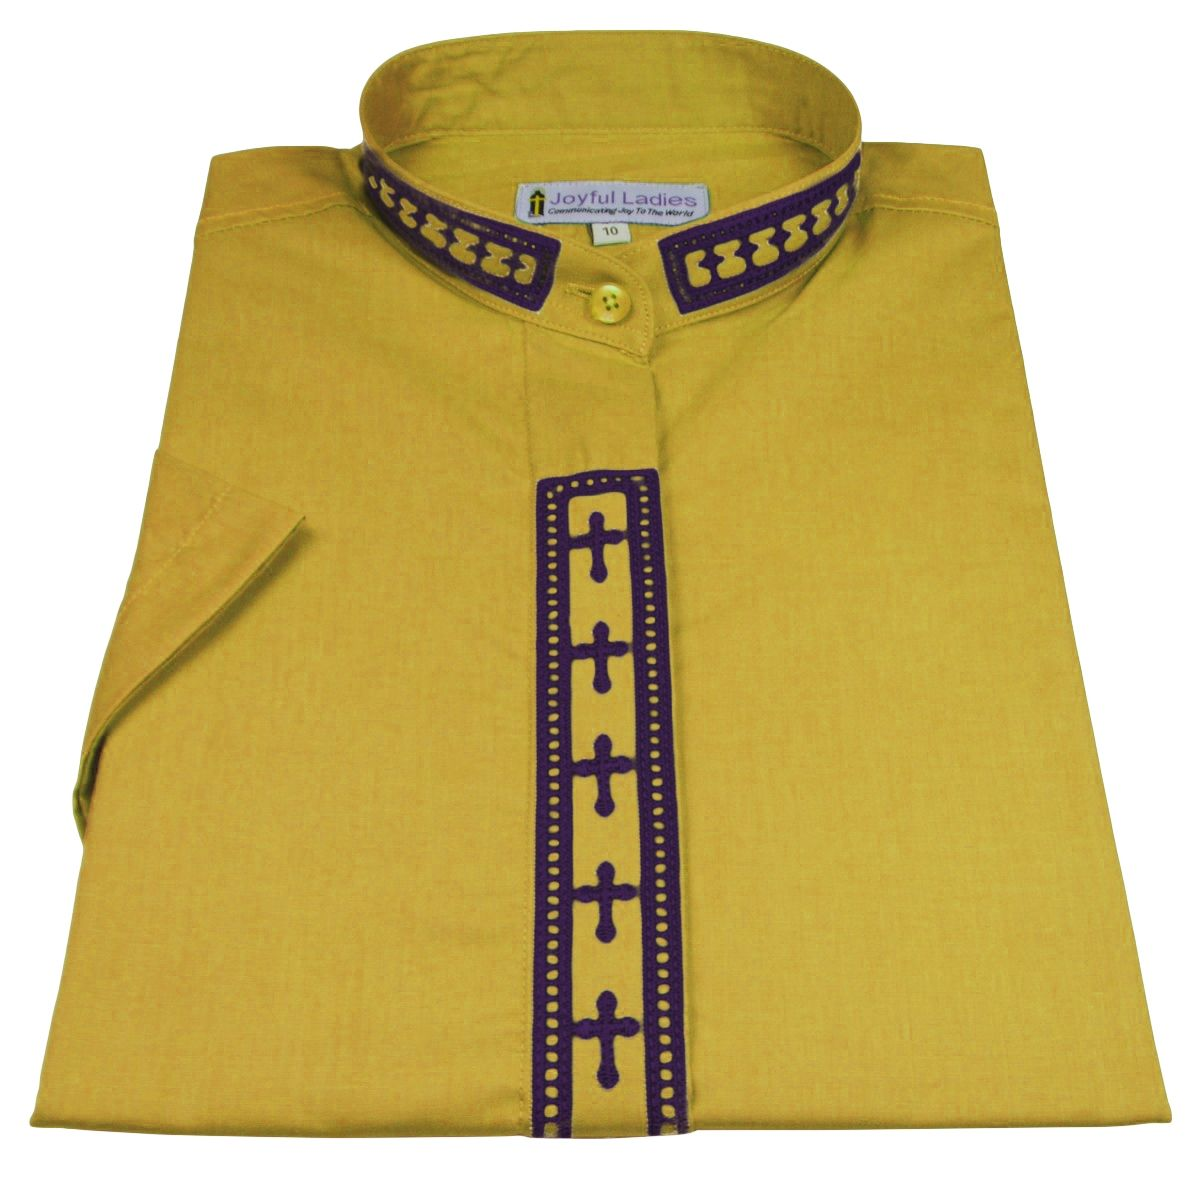 770. Women's Short-Sleeve Clergy Shirt With Fine Embroidery - Gold/Purple